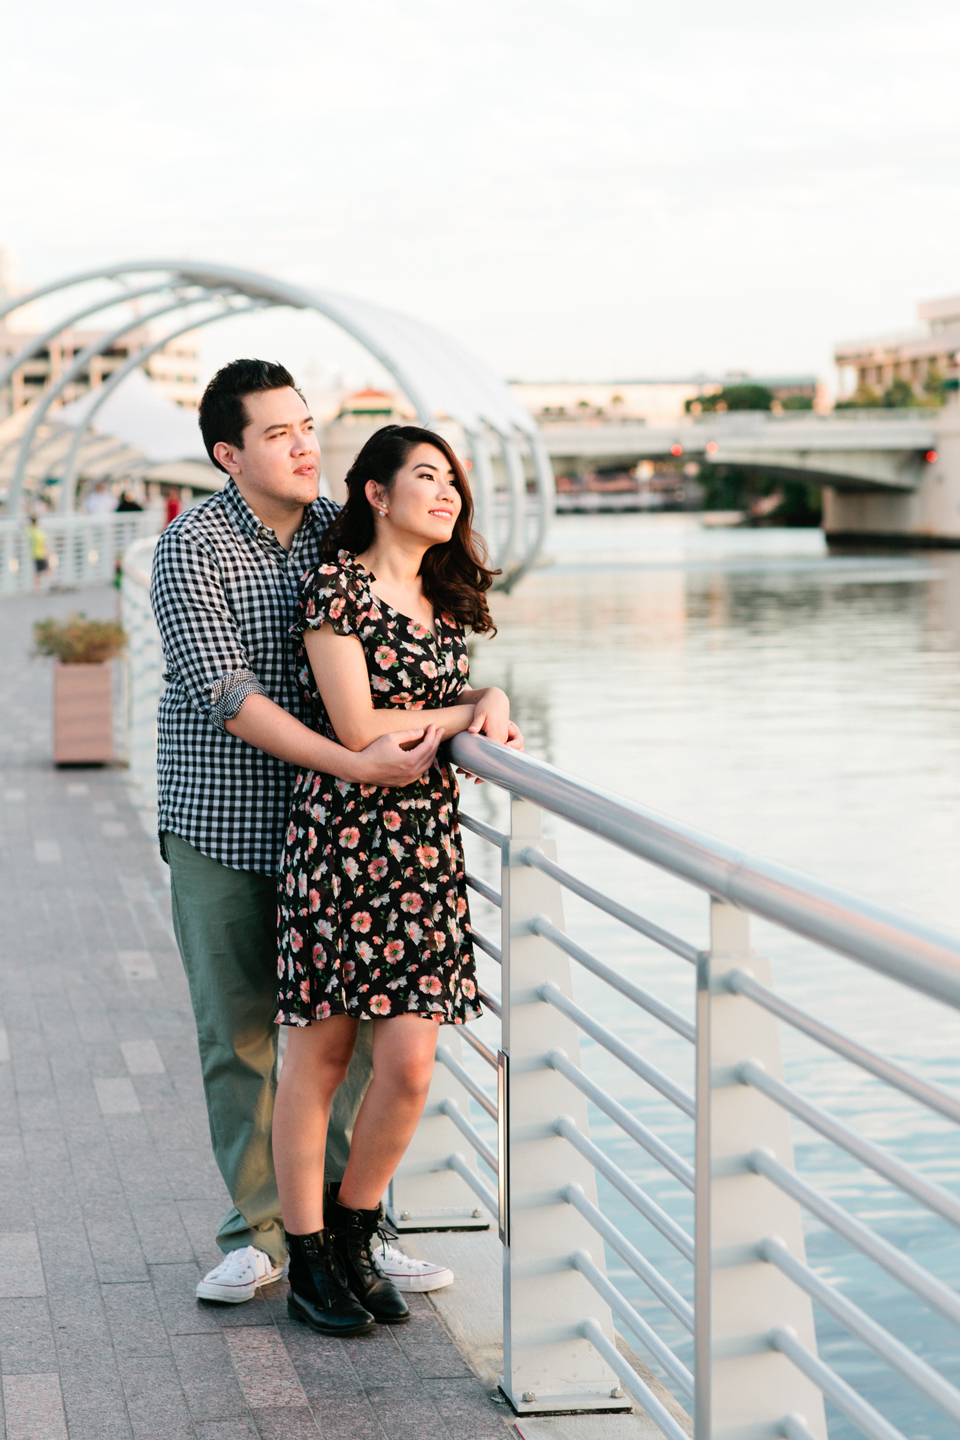 Image of an engaged couple looking out on the riverwalk in downtown Tampa at Curtis Hixon Waterfront Park.